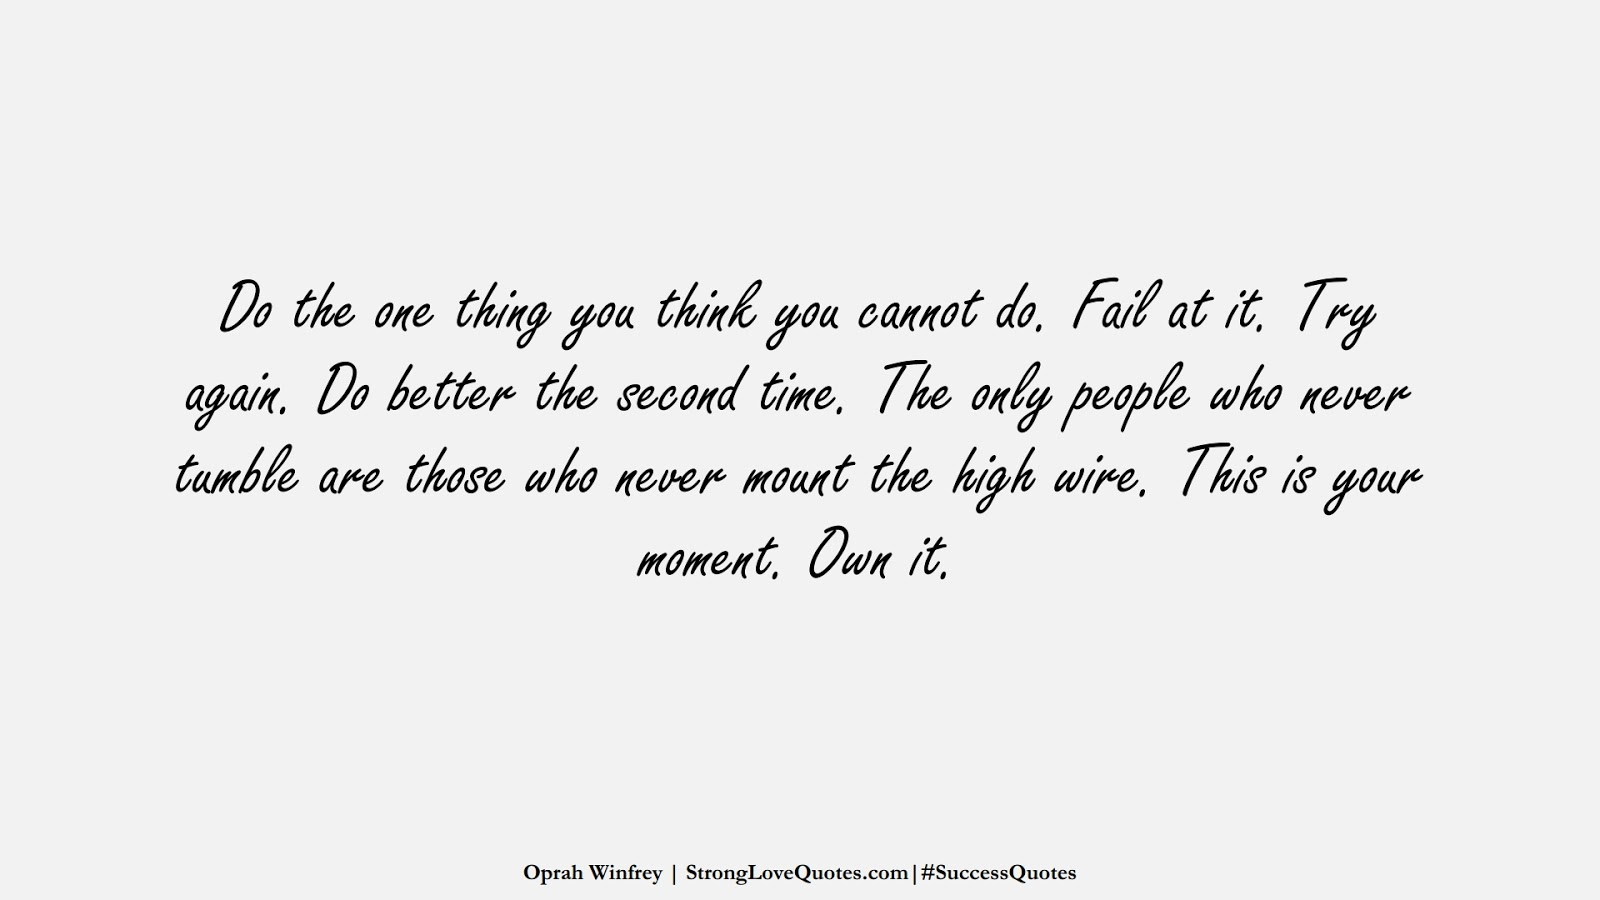 Do the one thing you think you cannot do. Fail at it. Try again. Do better the second time. The only people who never tumble are those who never mount the high wire. This is your moment. Own it. (Oprah Winfrey);  #SuccessQuotes